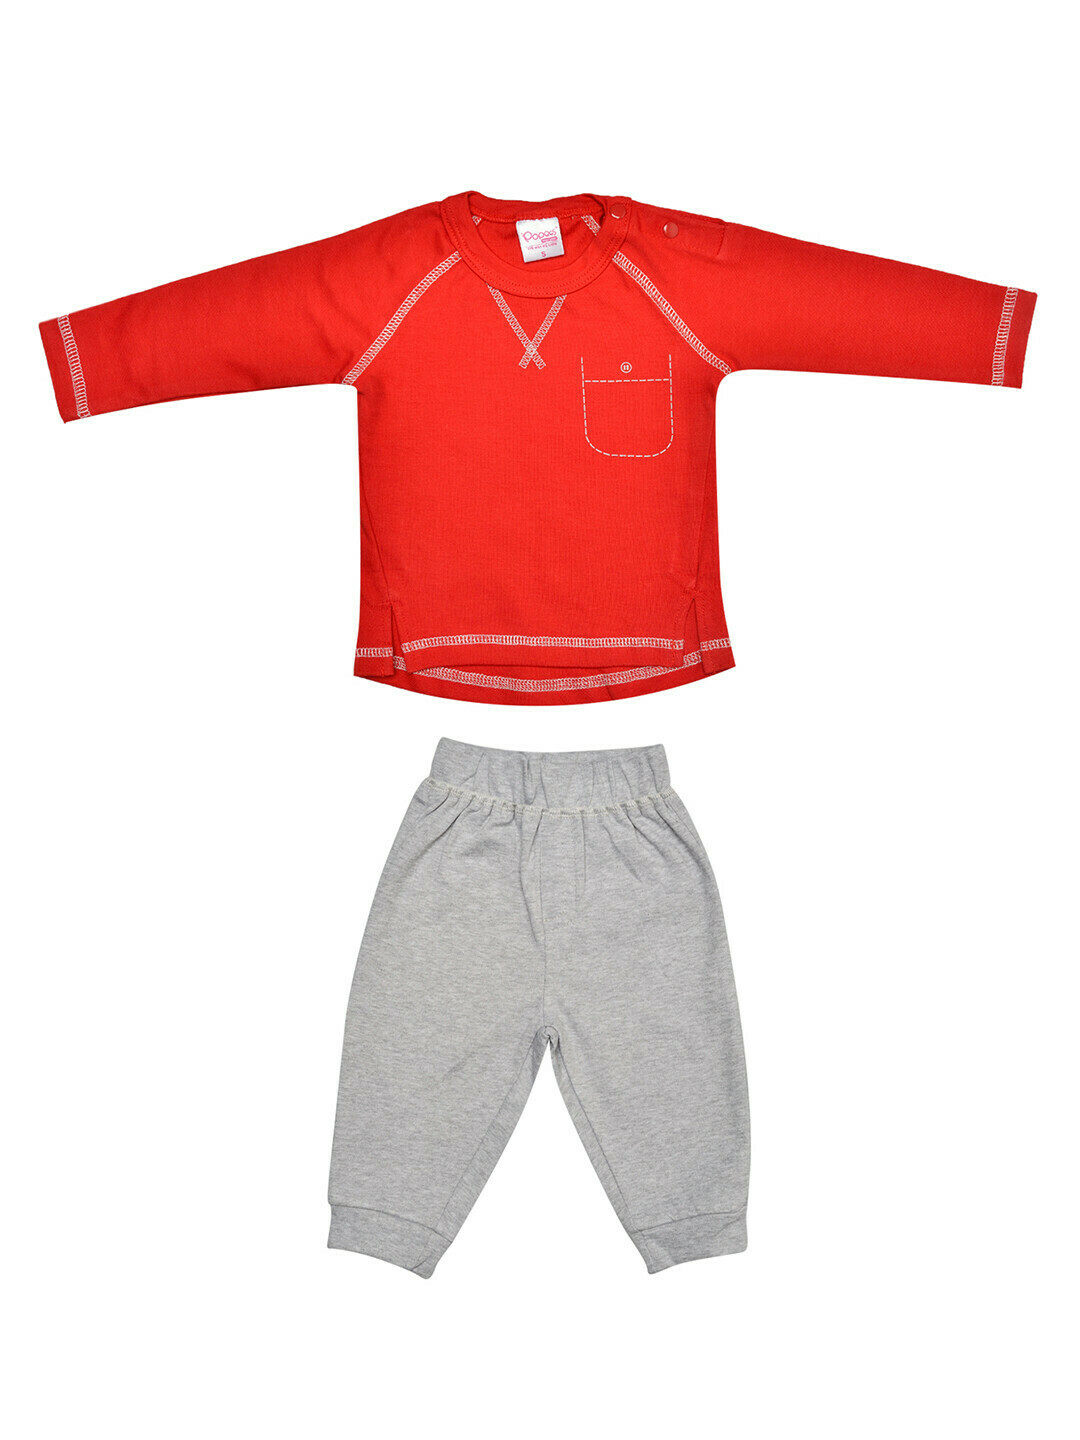 FIVES Red Top/Pant Full Sleeve Shoulder Open Interlock BOYS for Autumn & Winter